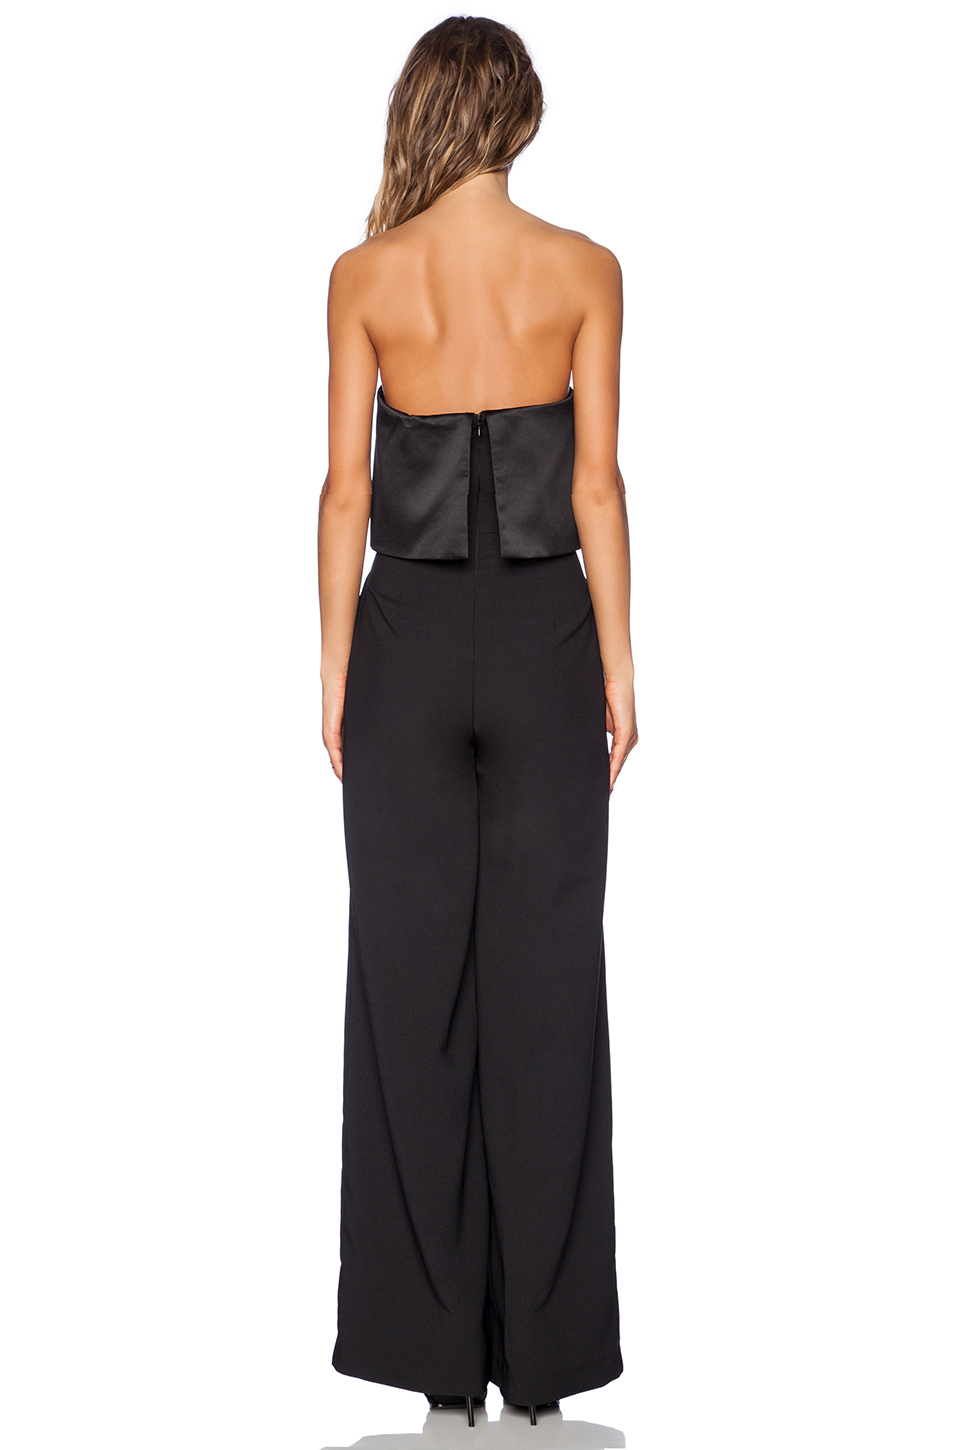 0306bcb14575 Lyst - Solace London Tailor Strapless Jumpsuit in Black